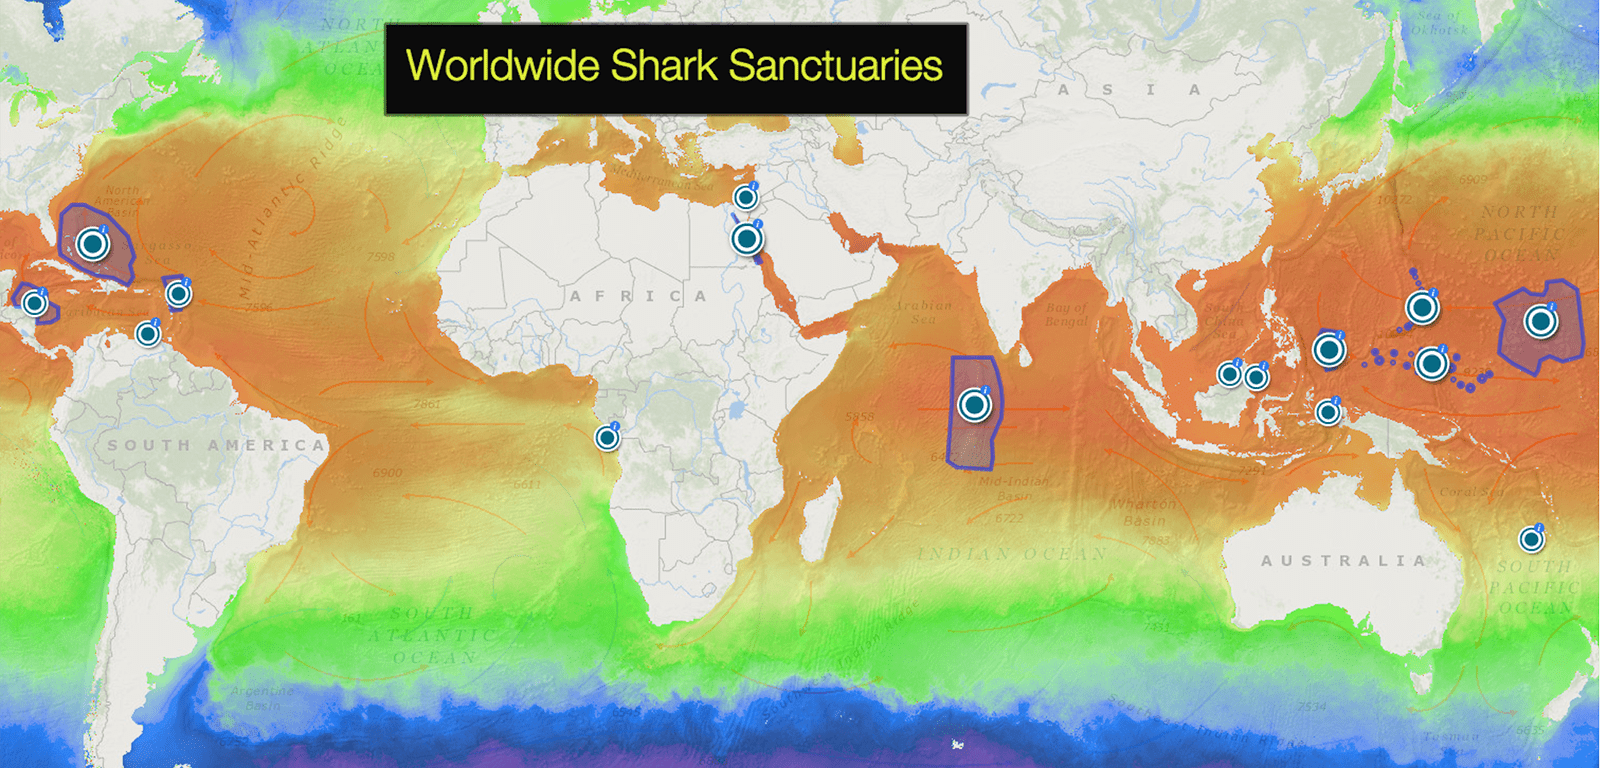 Saving Sharks with Sanctuaries